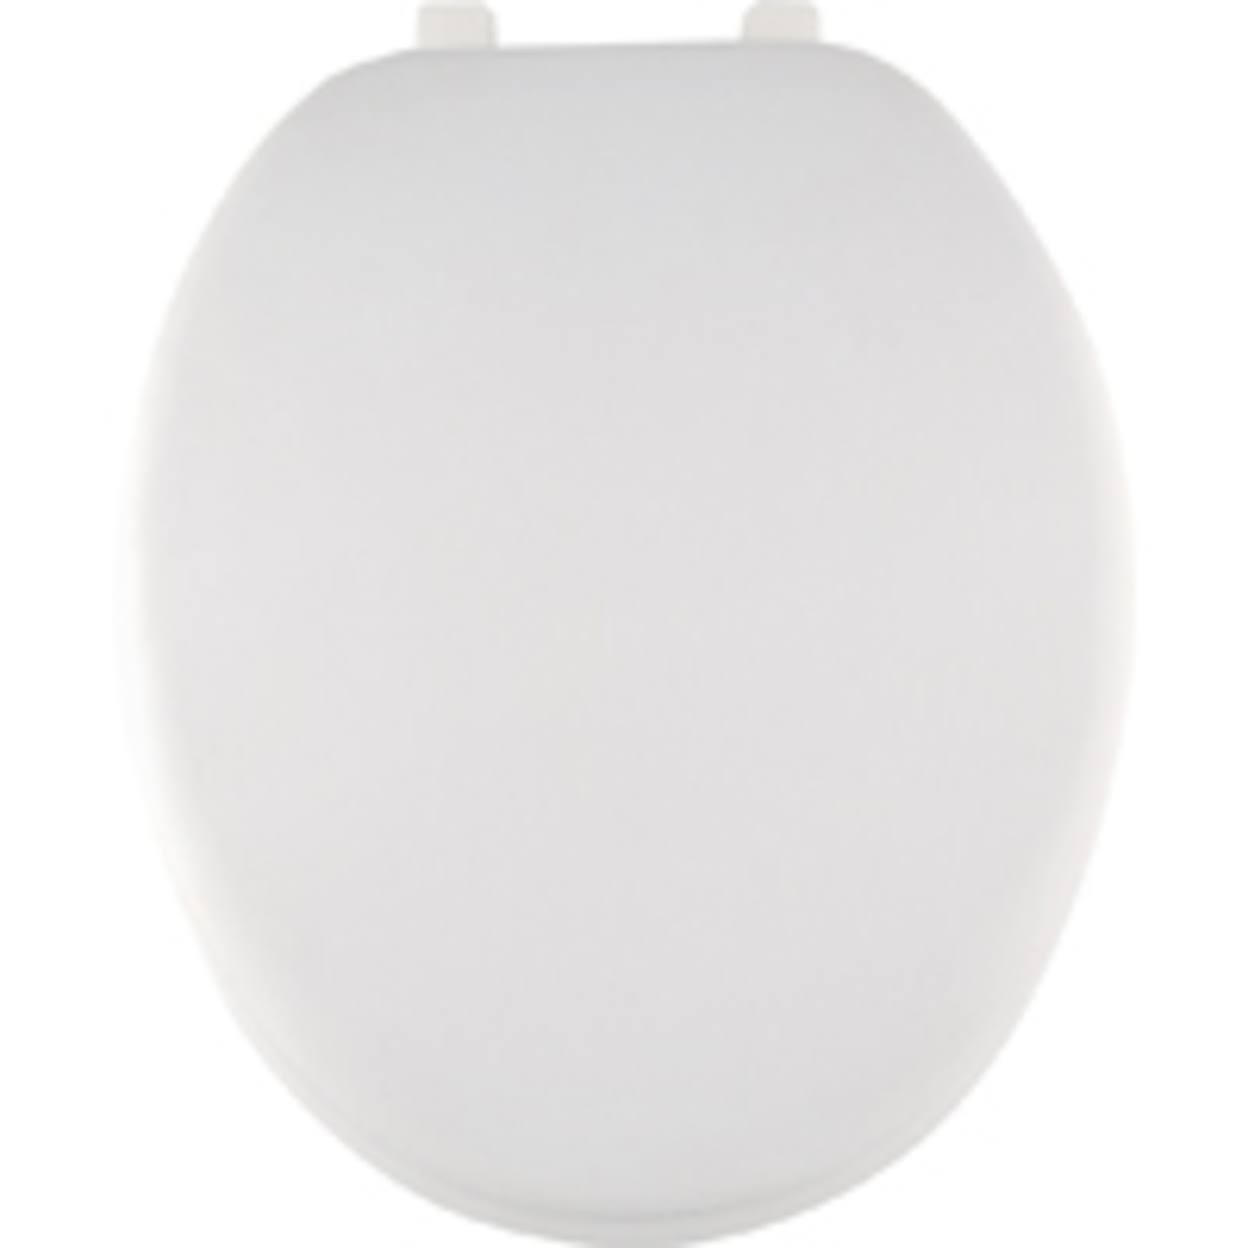 Mintcraft Elongated Toilet Seat - White, 19""